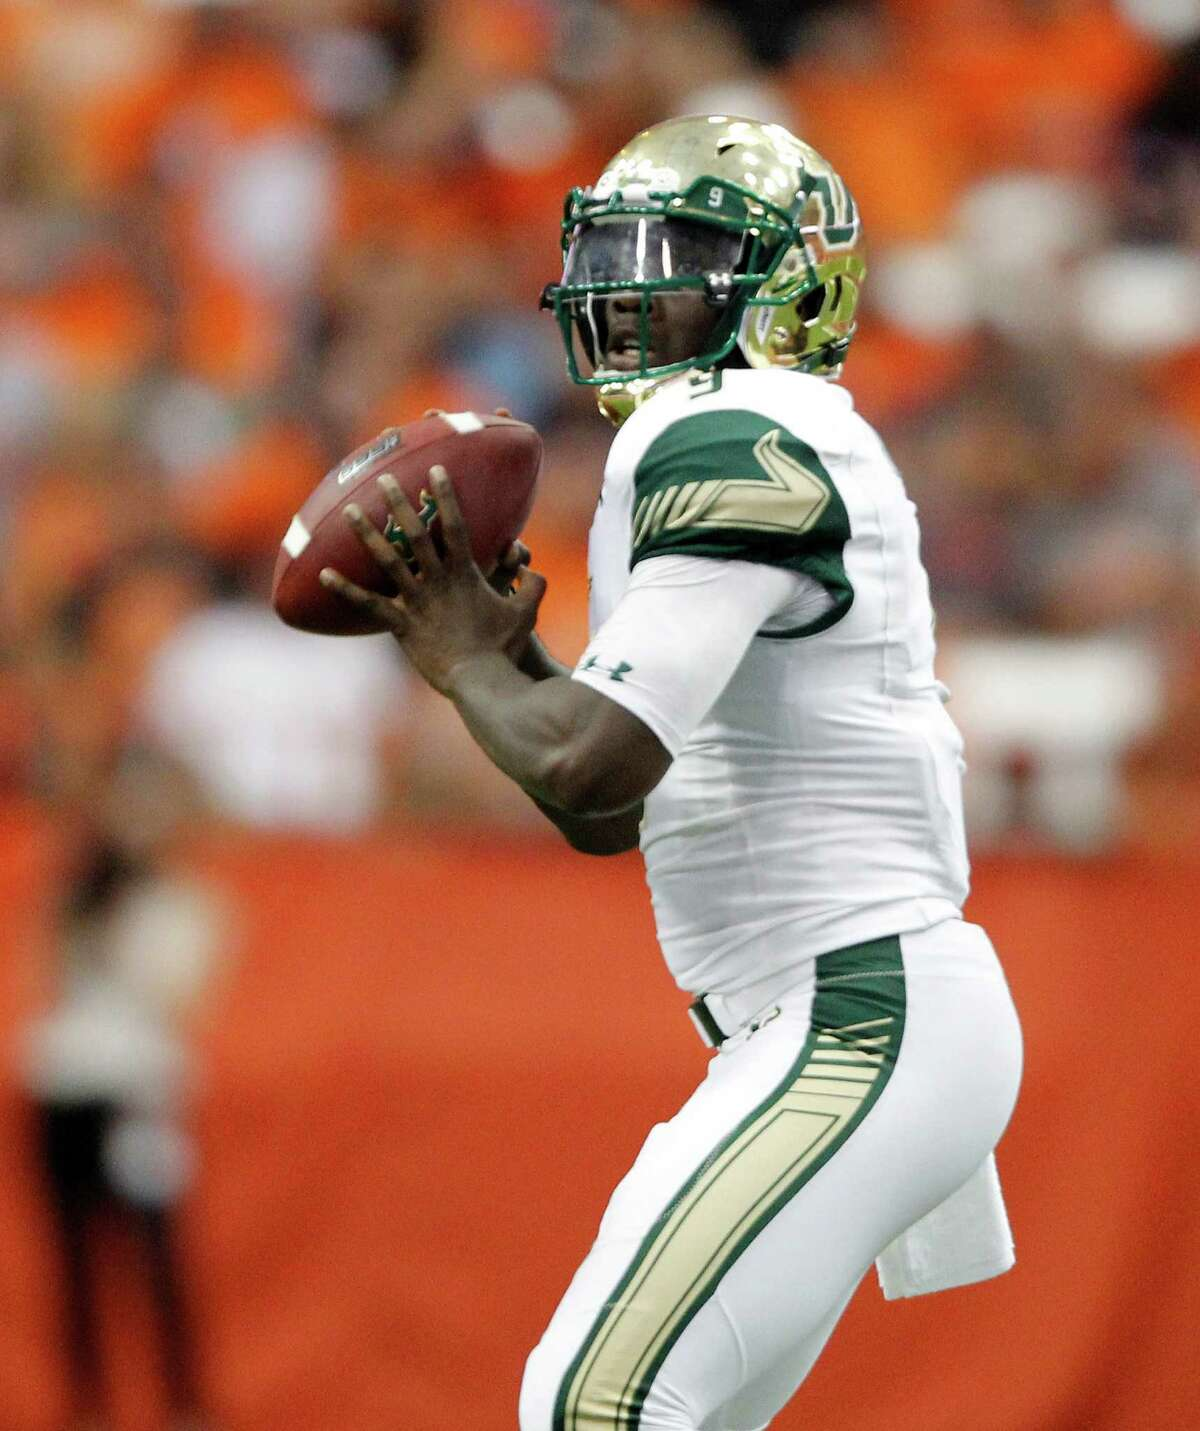 South Florida's Quinton Flowers looks to pass the ball in the second quarter an NCAA college football game against Syracuse in Syracuse, N.Y., Saturday, Sept. 17, 2016. (AP Photo/Nick Lisi) ORG XMIT: NYNL109